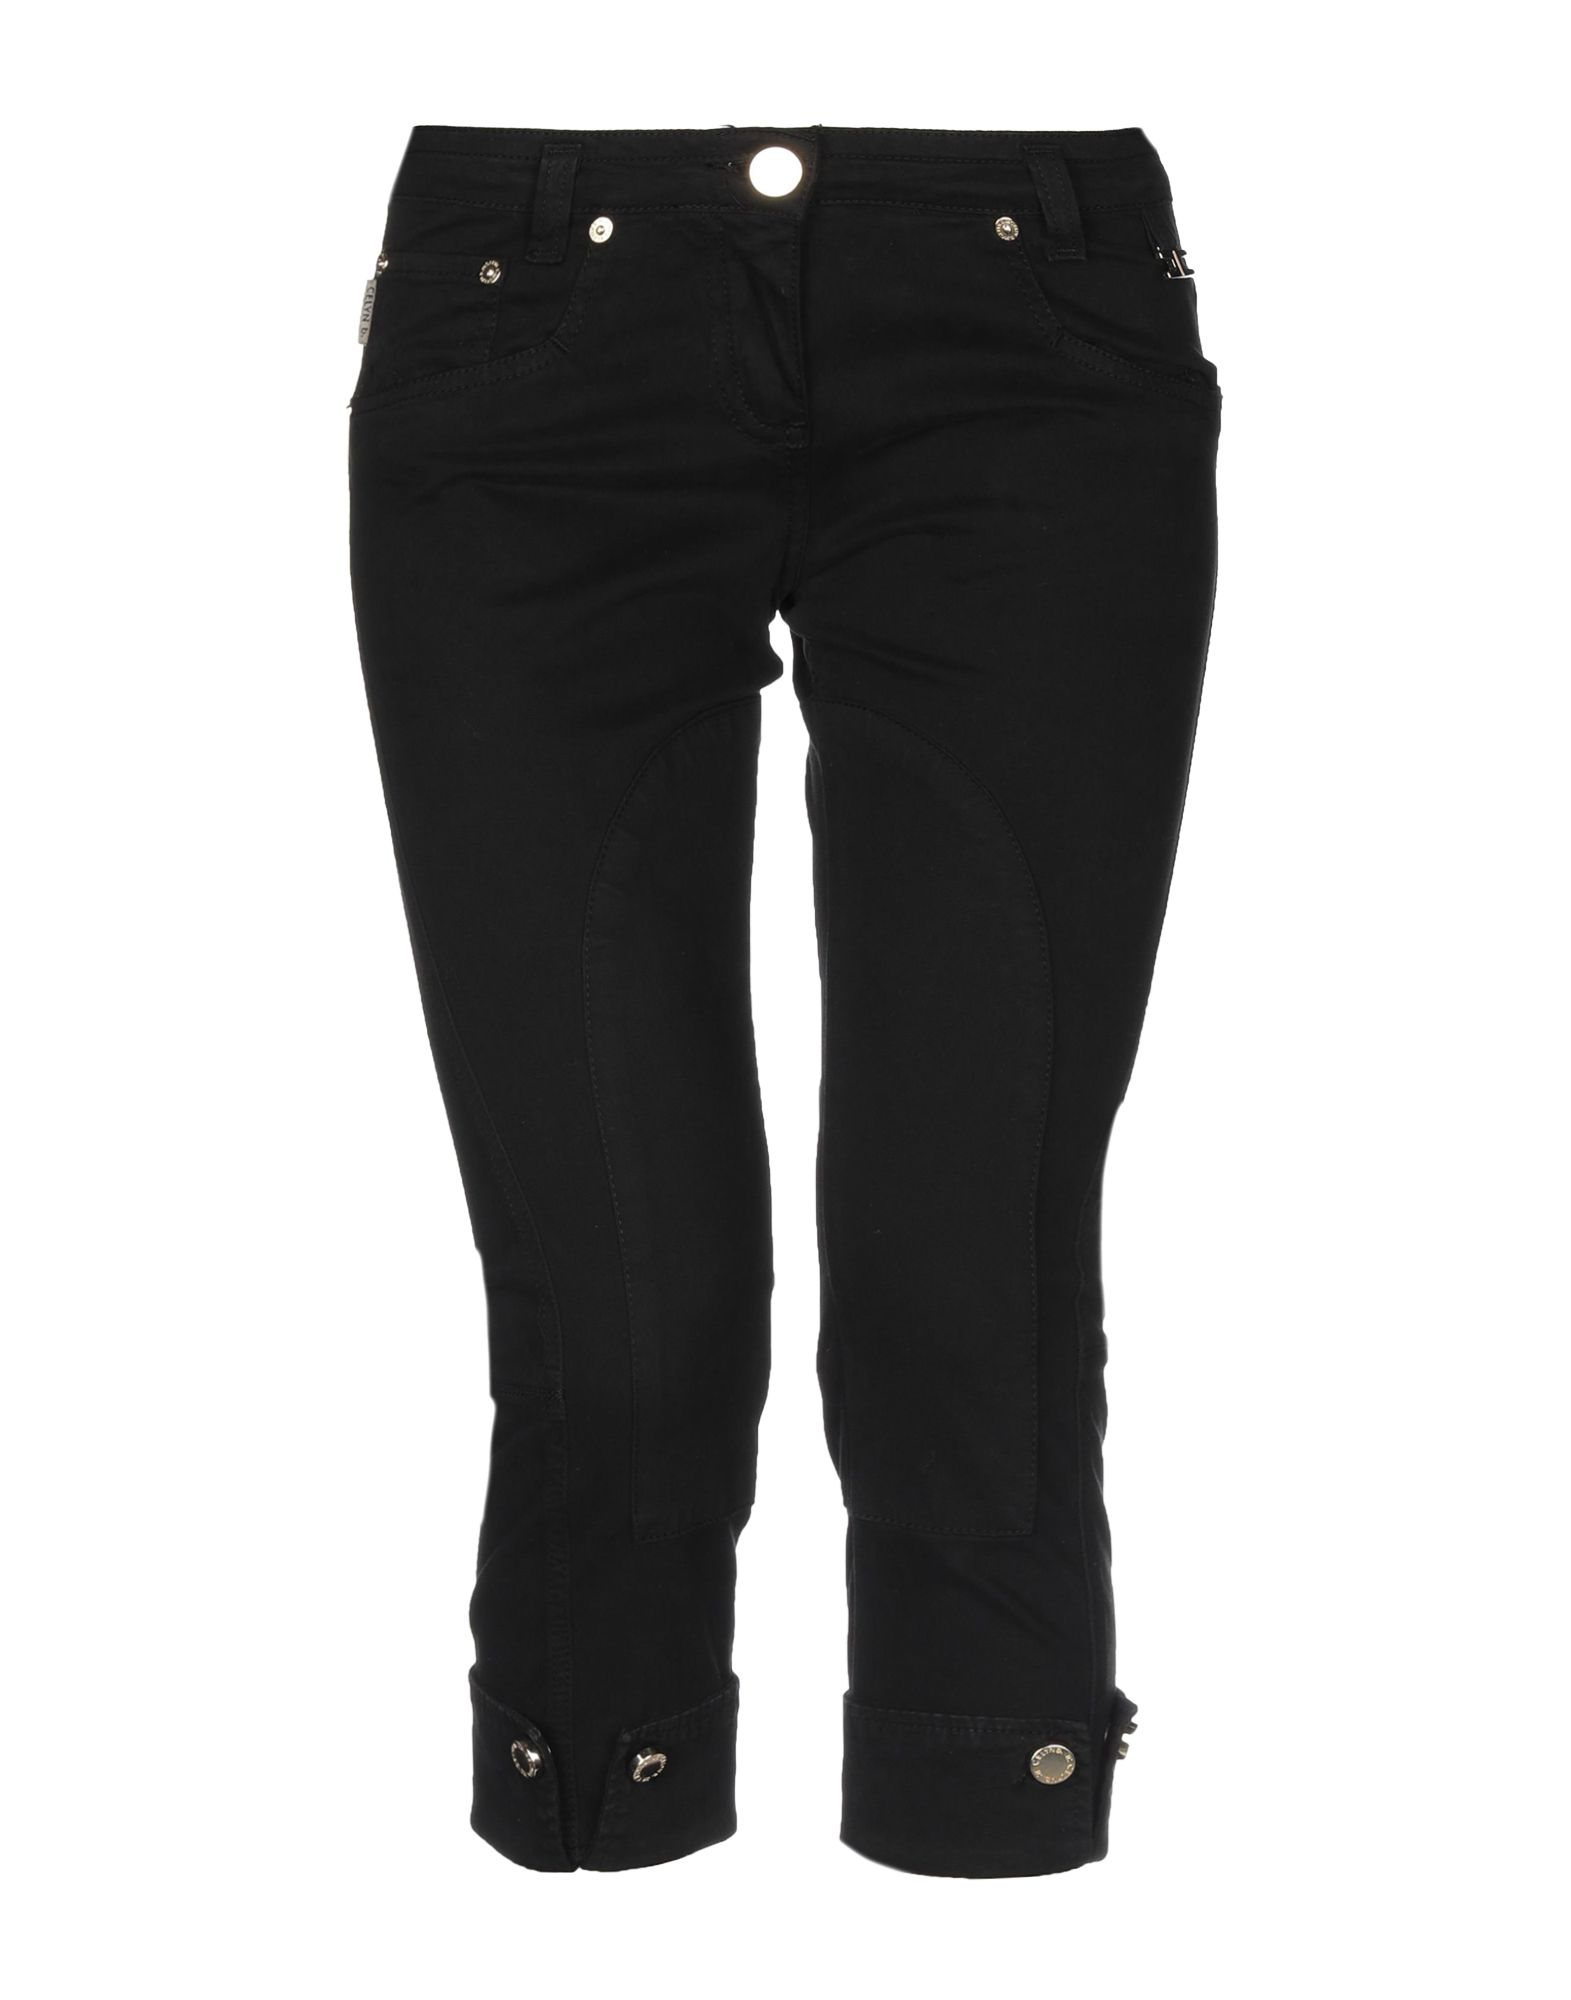 ELISABETTA FRANCHI JEANS for CELYN B. Брюки-капри elisabetta franchi jeans for celyn b брюки капри